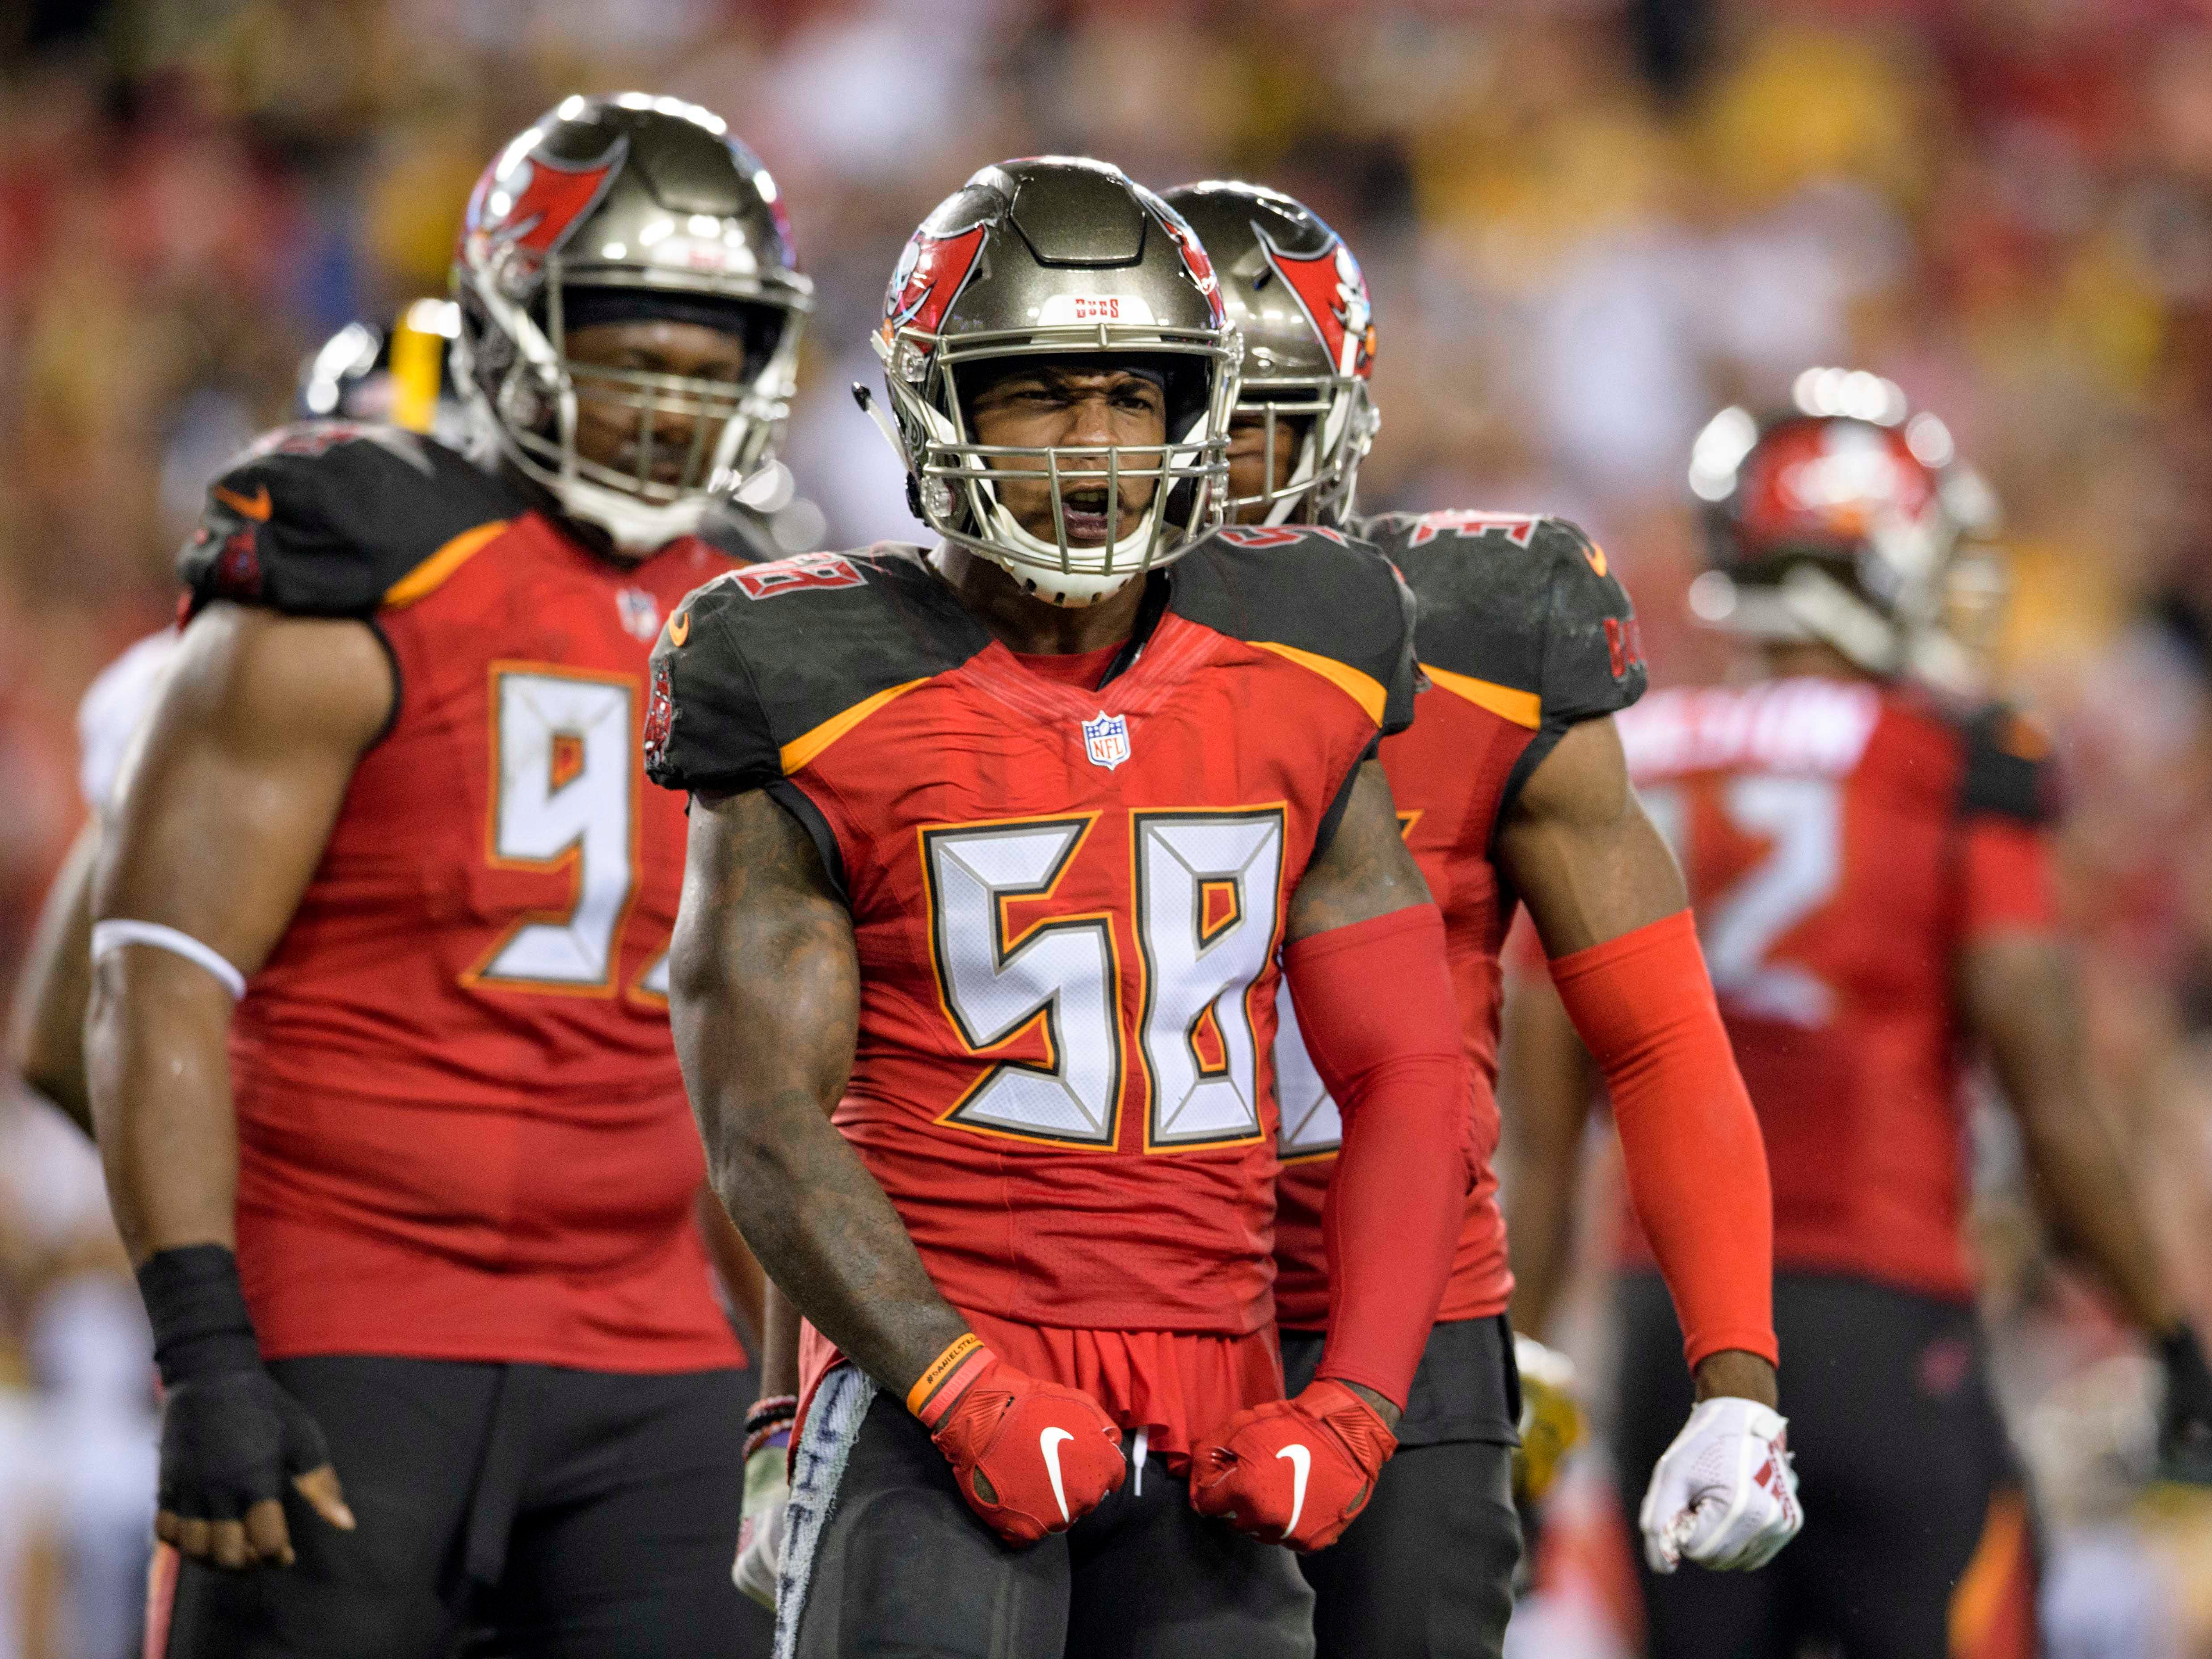 Kwon Alexander, LB, Tampa Bay Buccaneers (torn ACL, out for season)